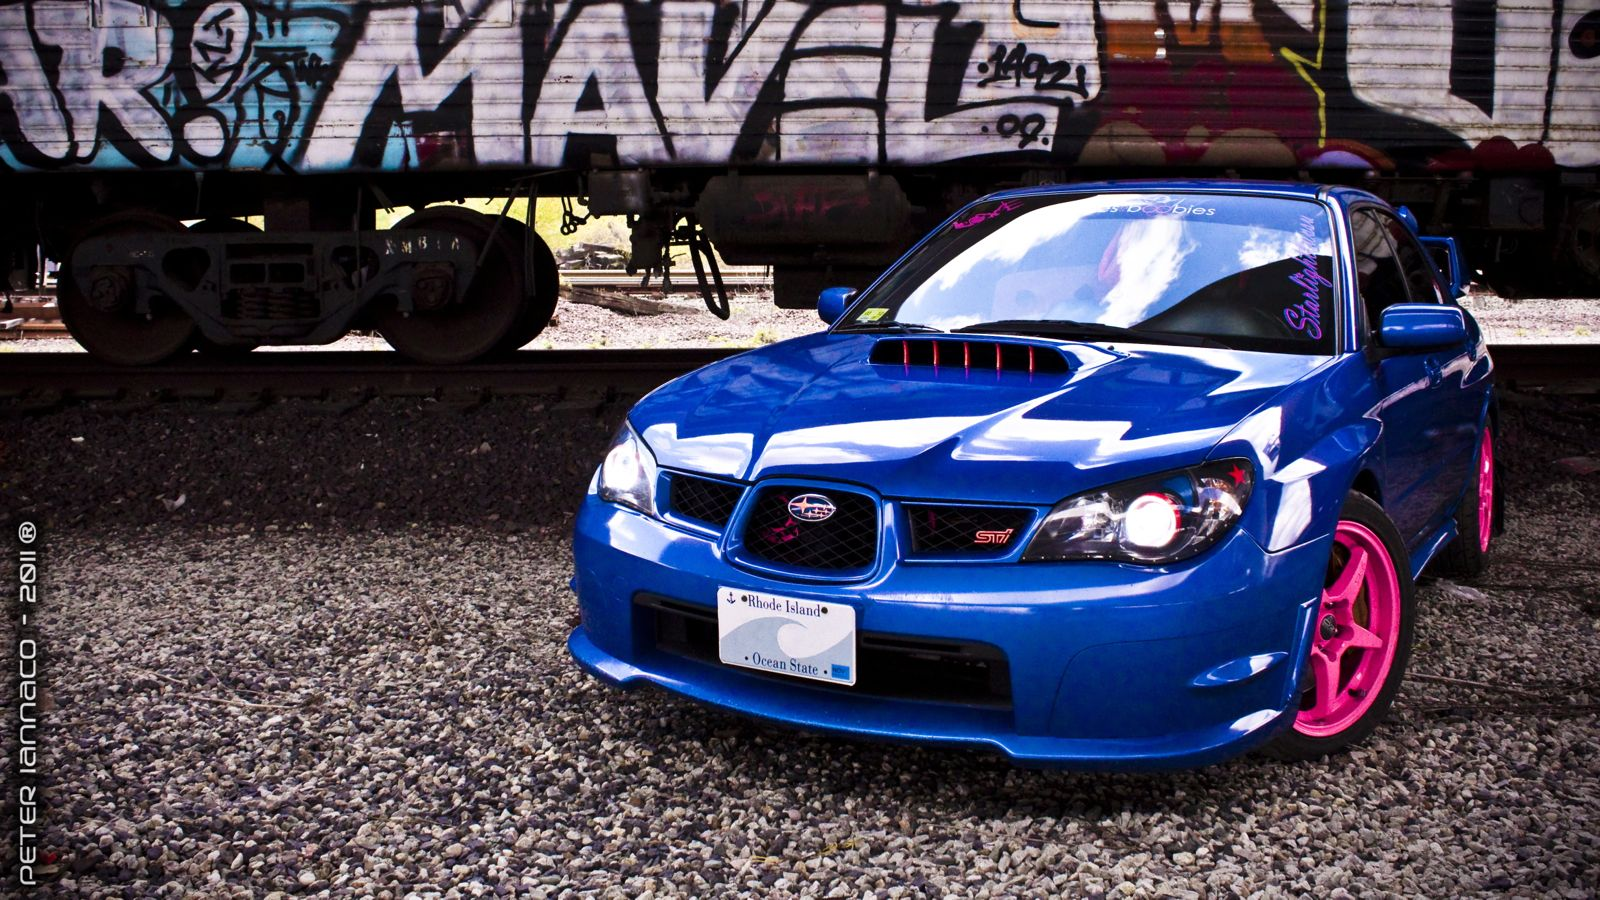 Cool Blue Subaru WRX STI